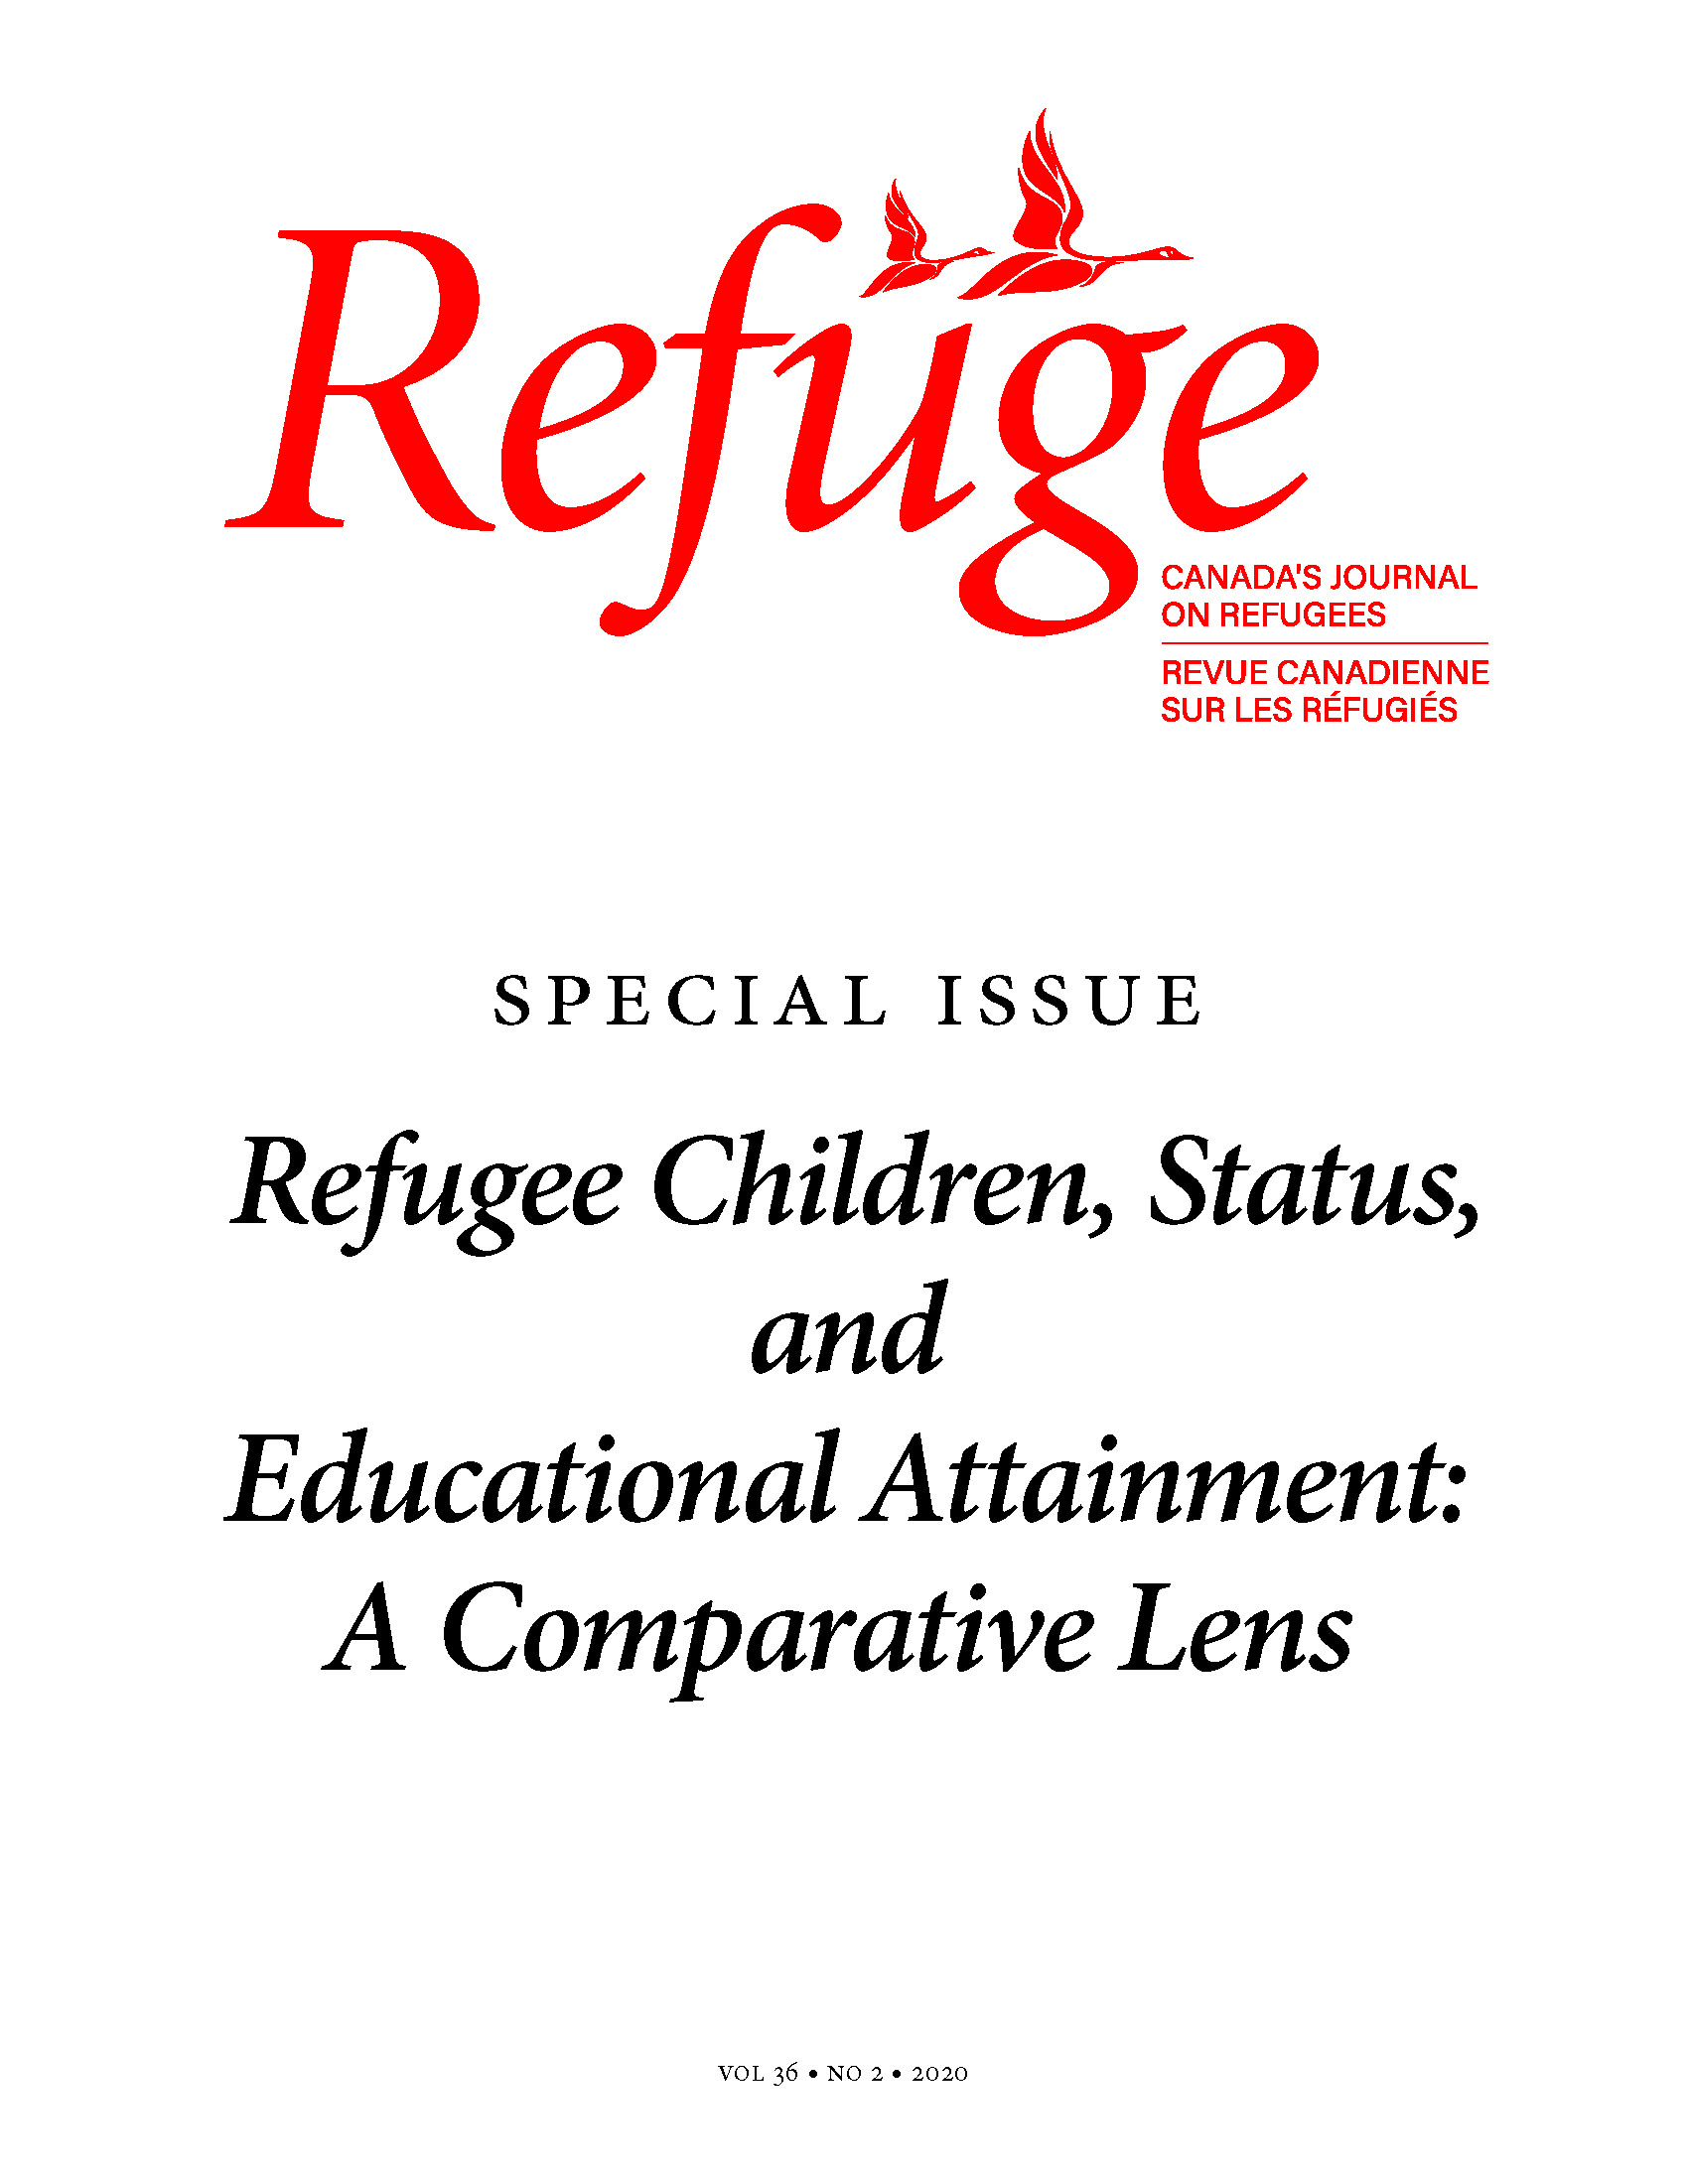 cover image of Refuge special issue on refugee children